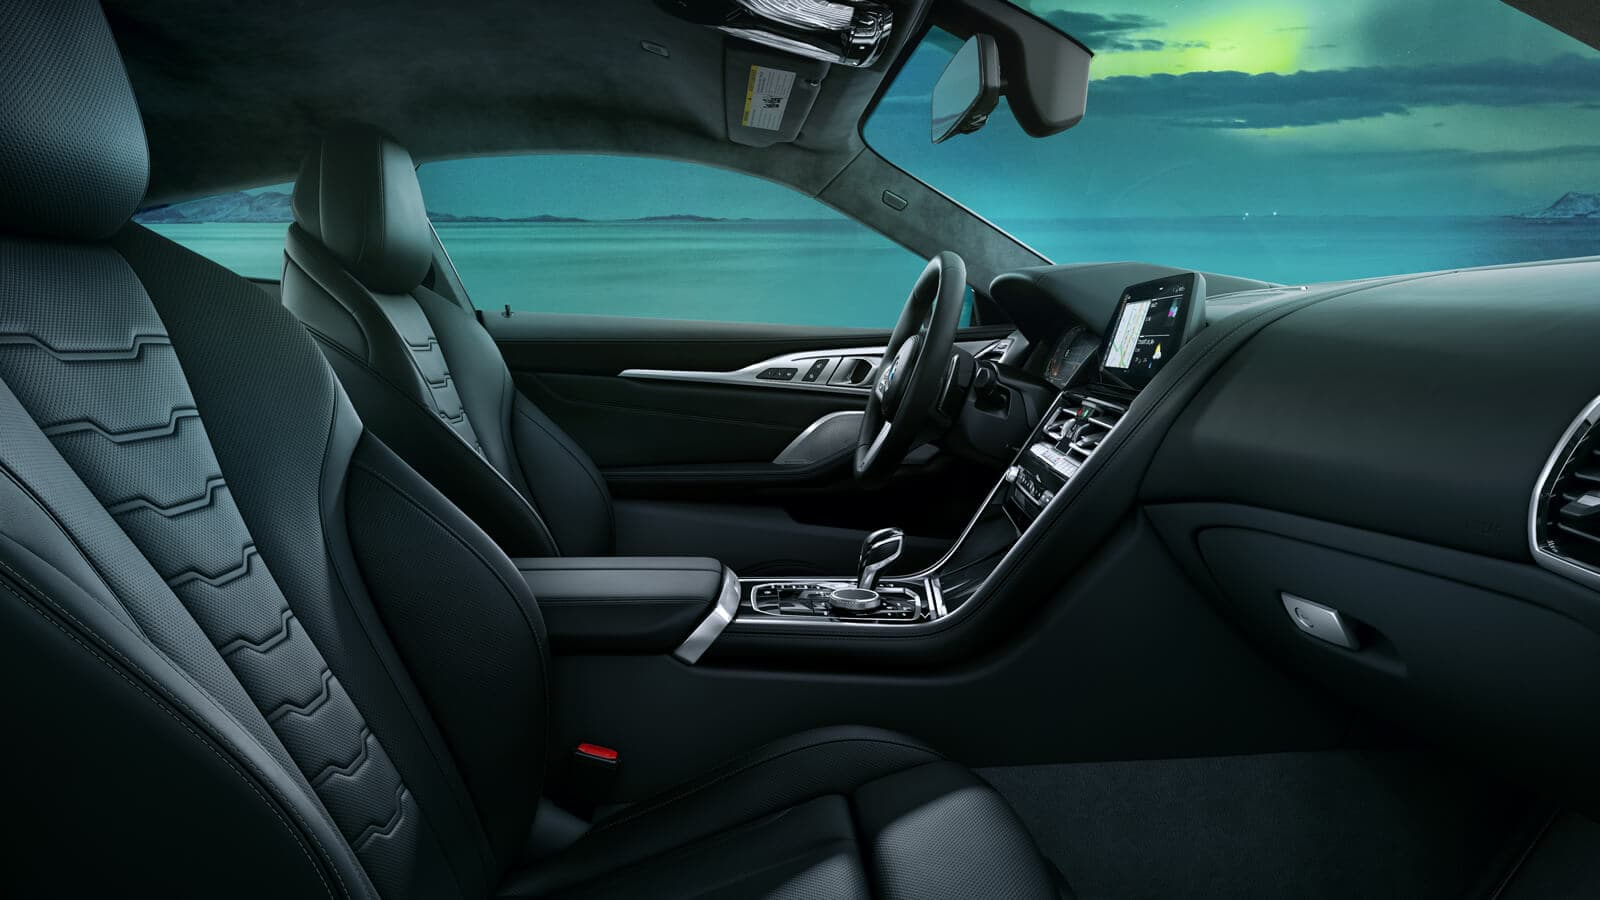 Interior of the BMW 8 Series